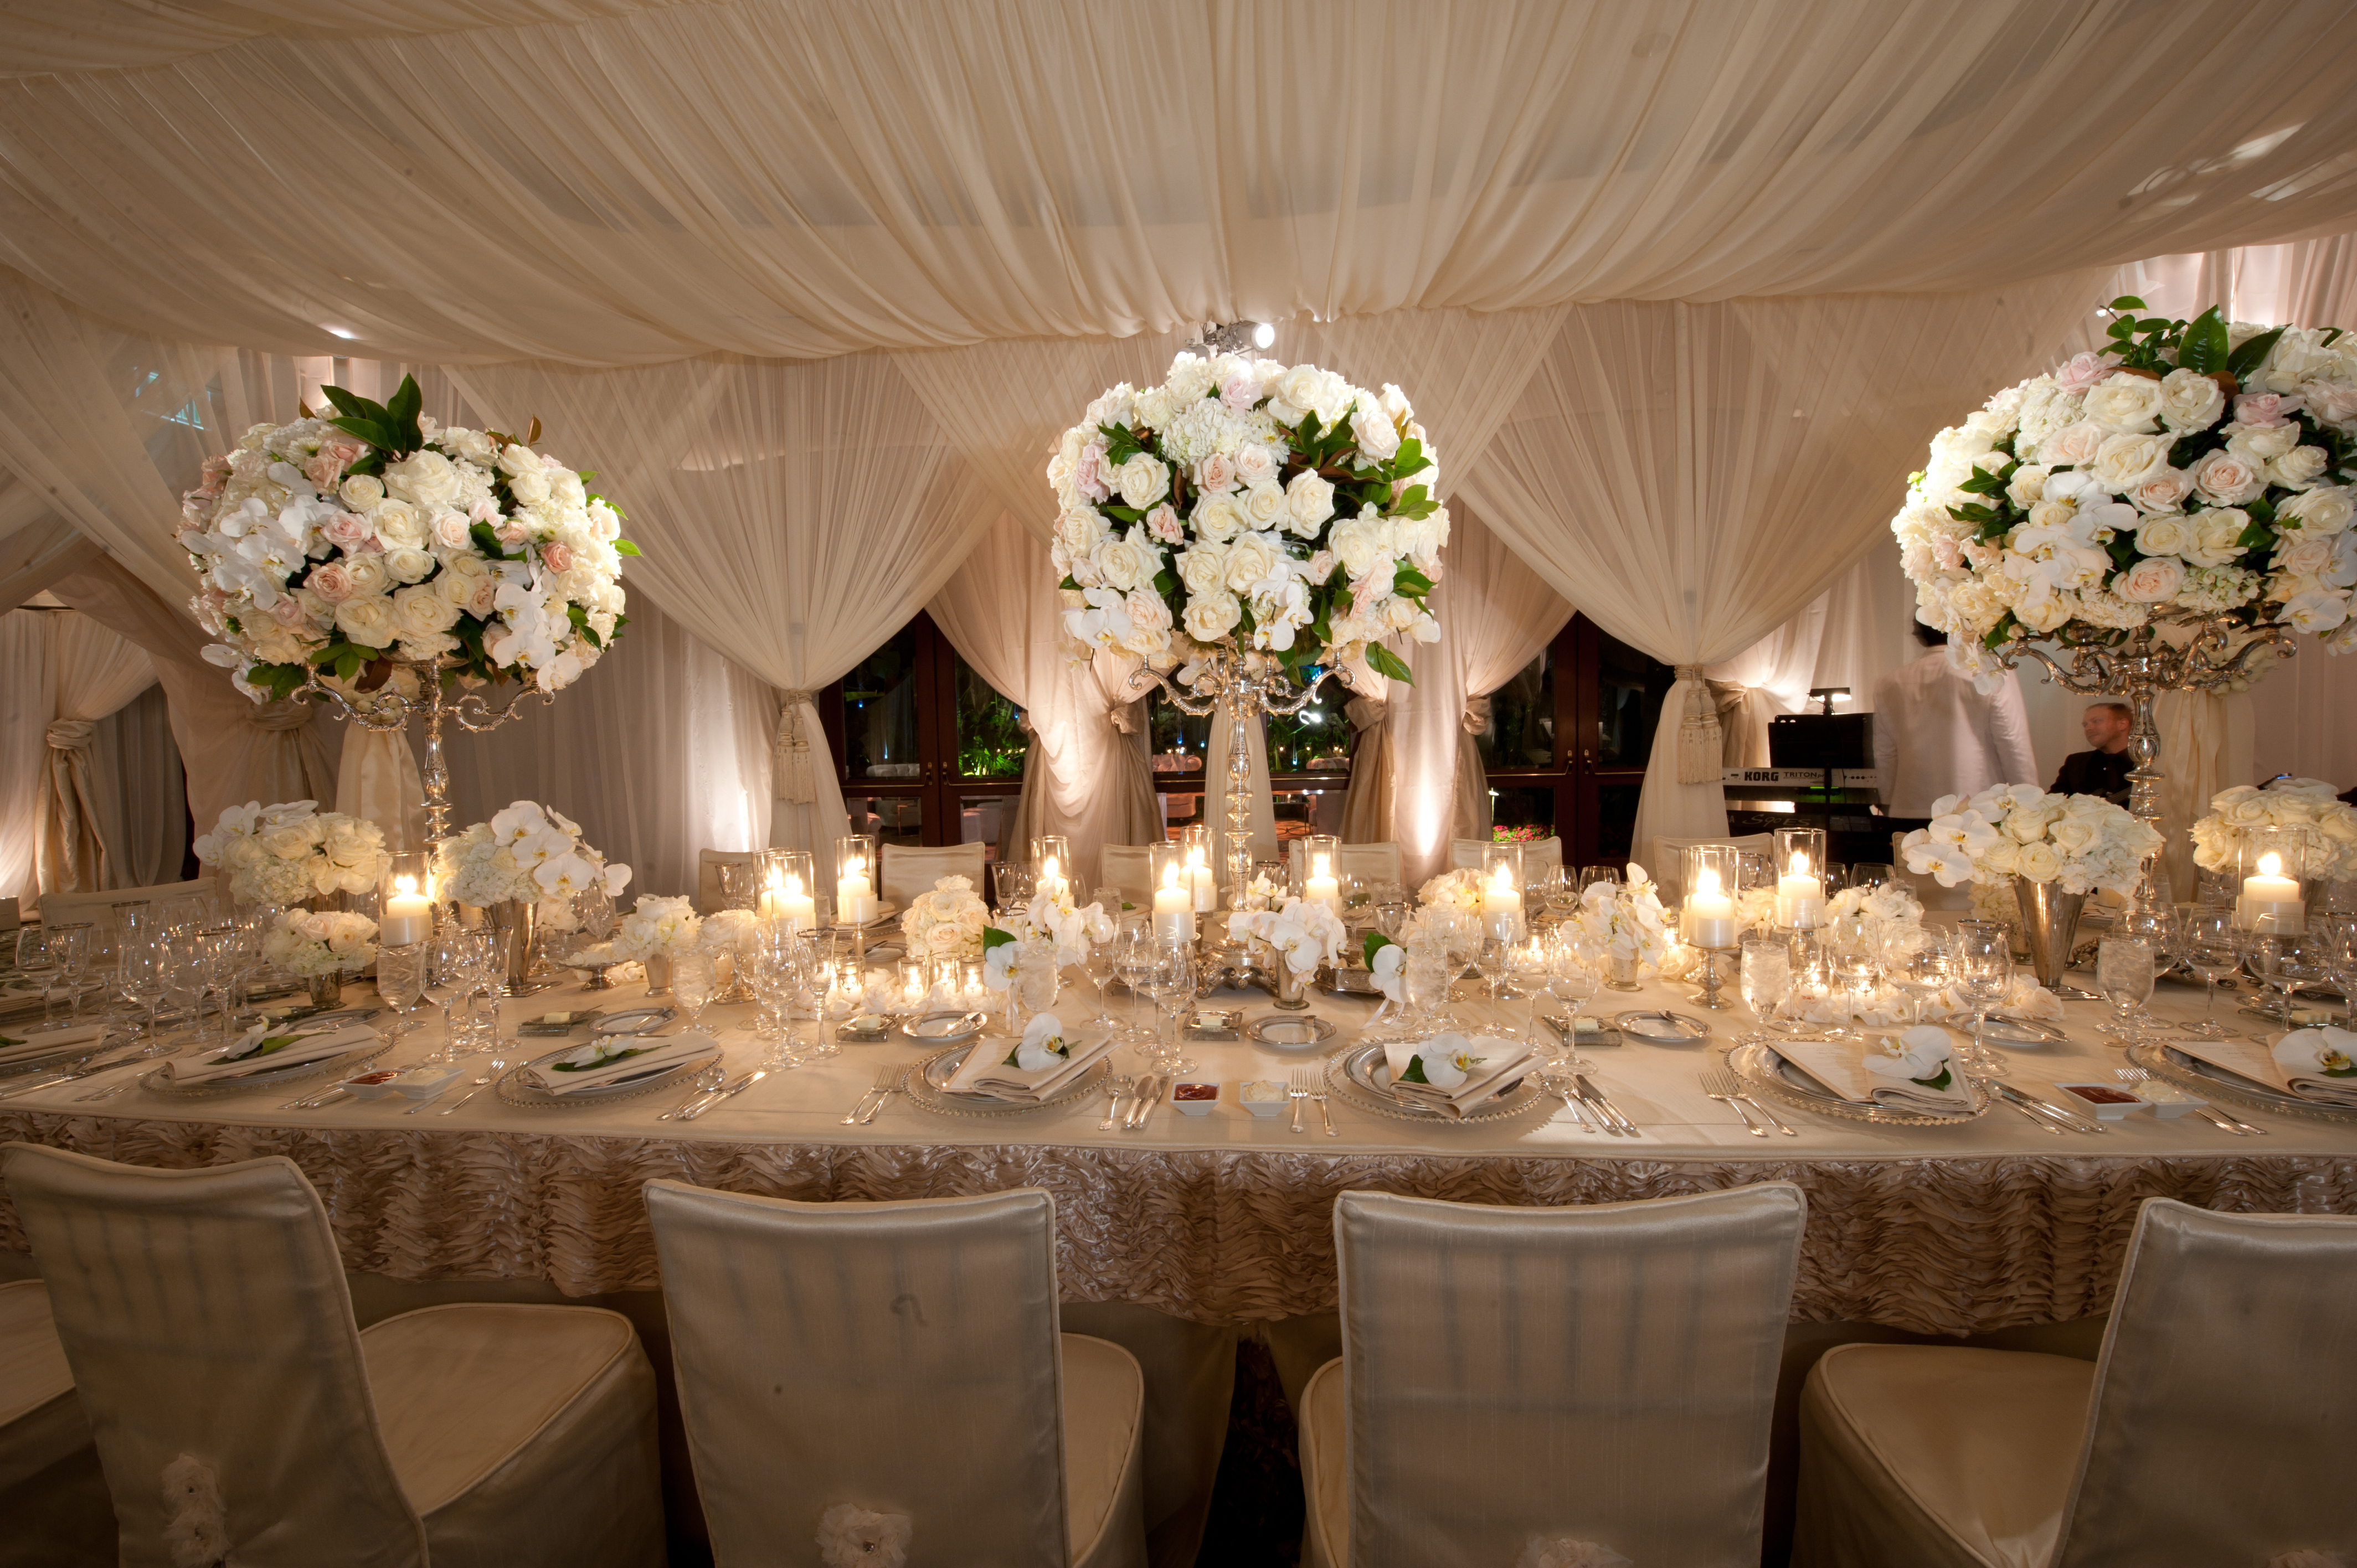 Wedding Table Luxury Wedding Table Decorations 17 best ideas about wedding head tables on pinterest table large table